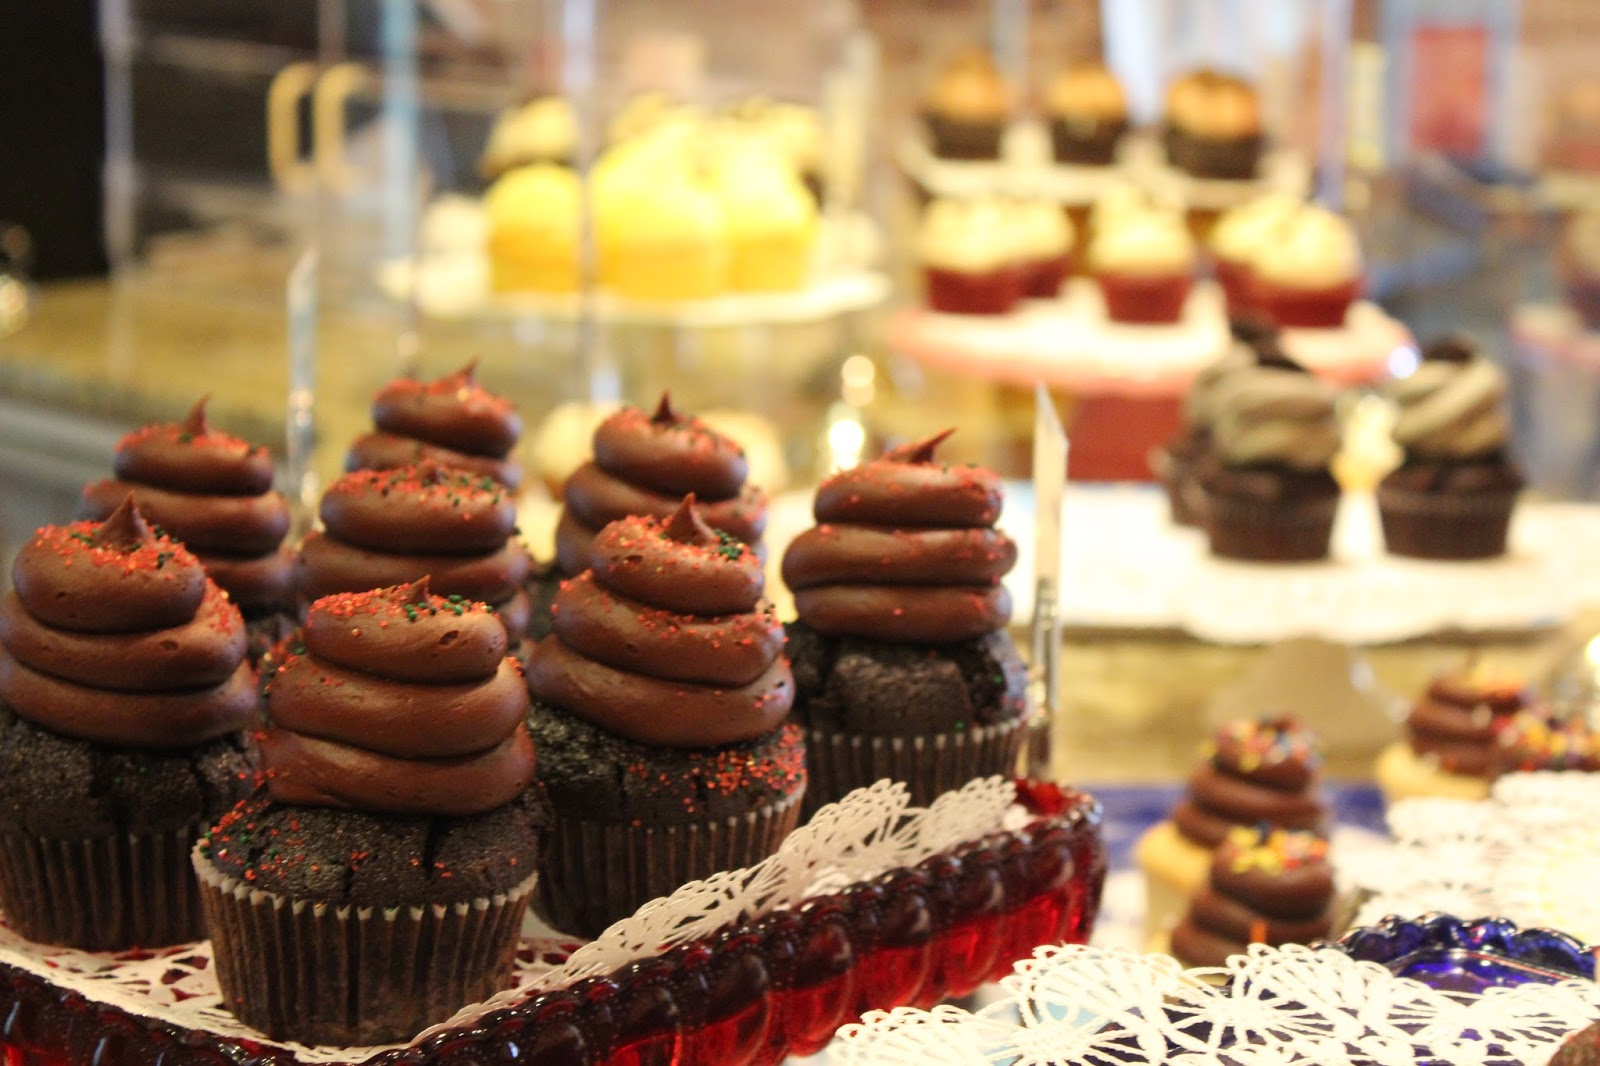 Cupcakes And Sunshine: Sweet Travels: Downtown Greenville